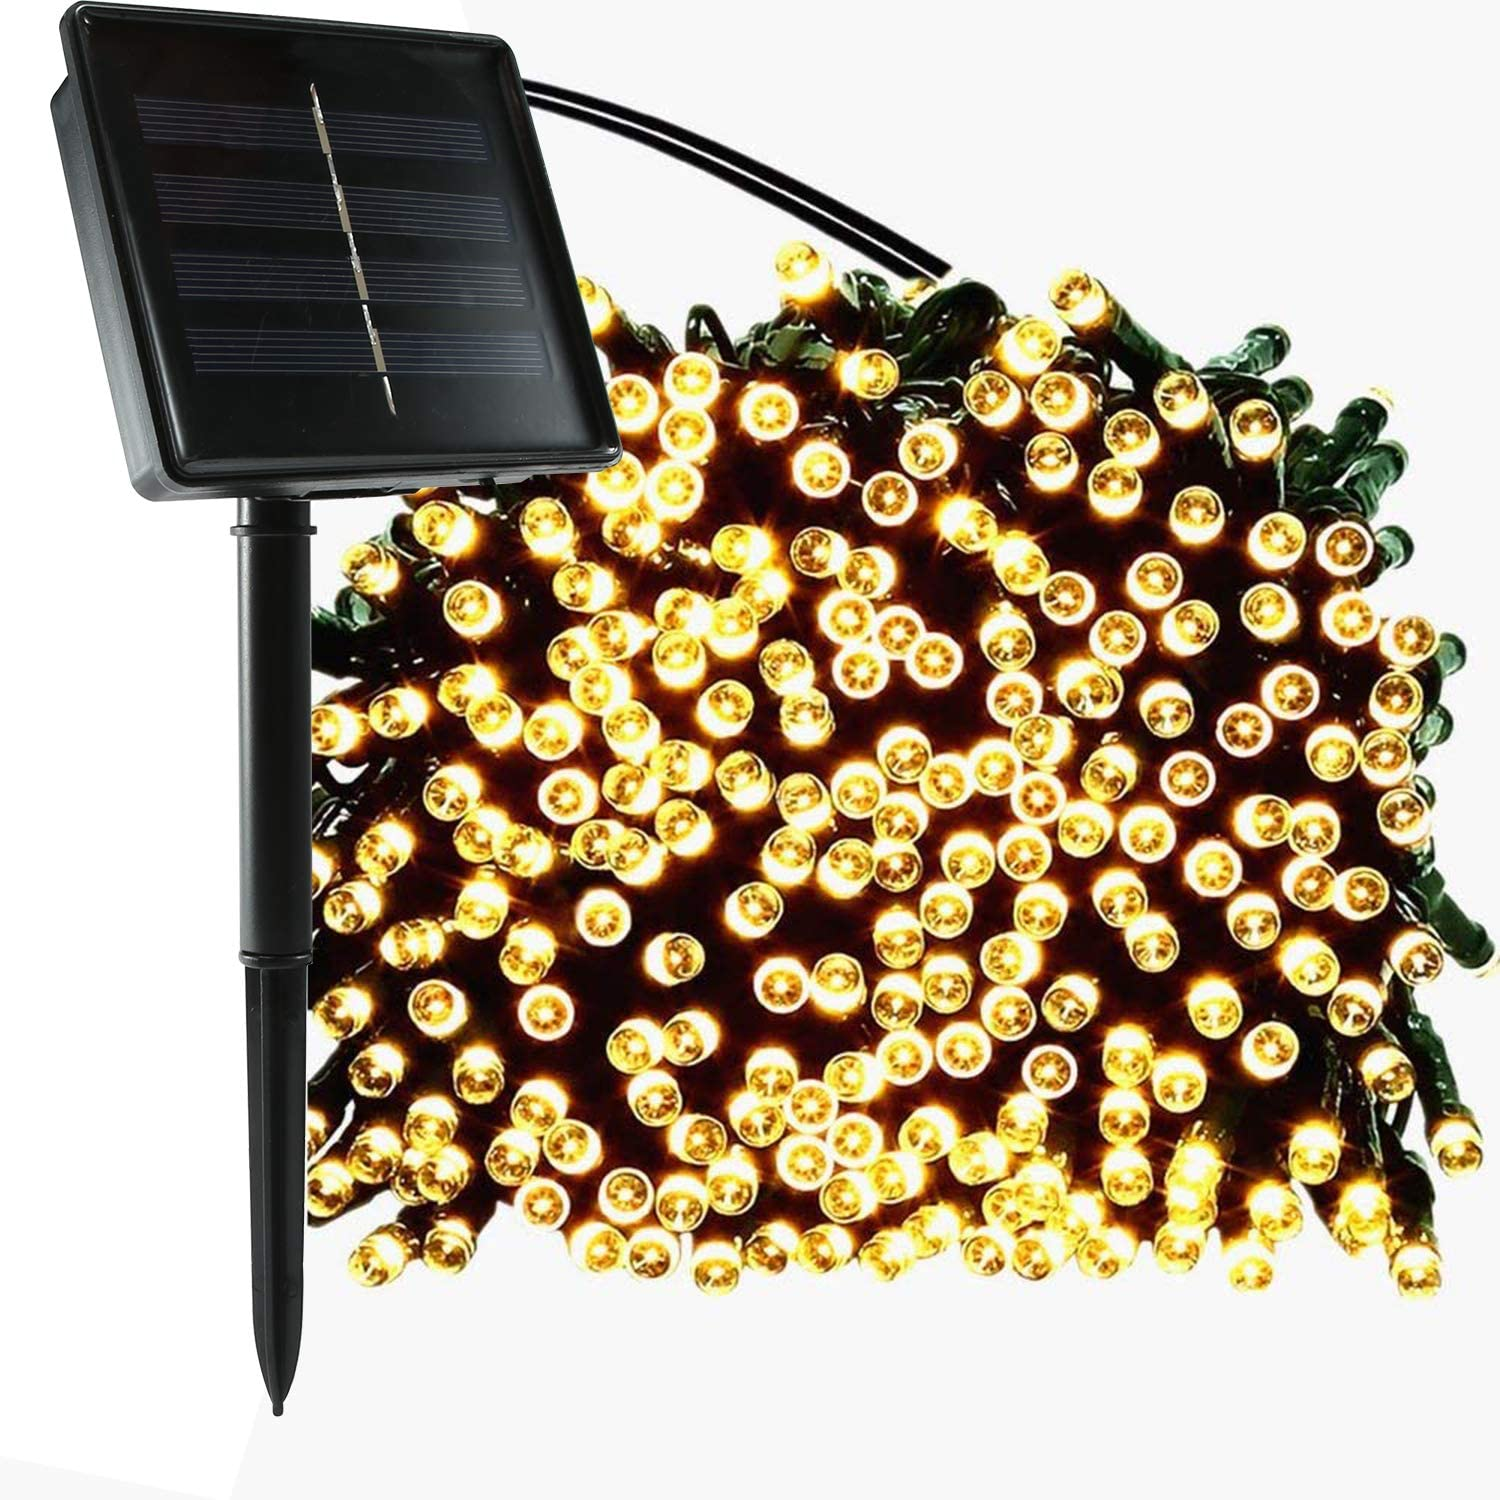 jar-owl Solar String Lights Outdoor Waterproof 72FT 200 LED 8 Modes for Home/Garden/Patio Wedding/Christmas Party (Warm White)